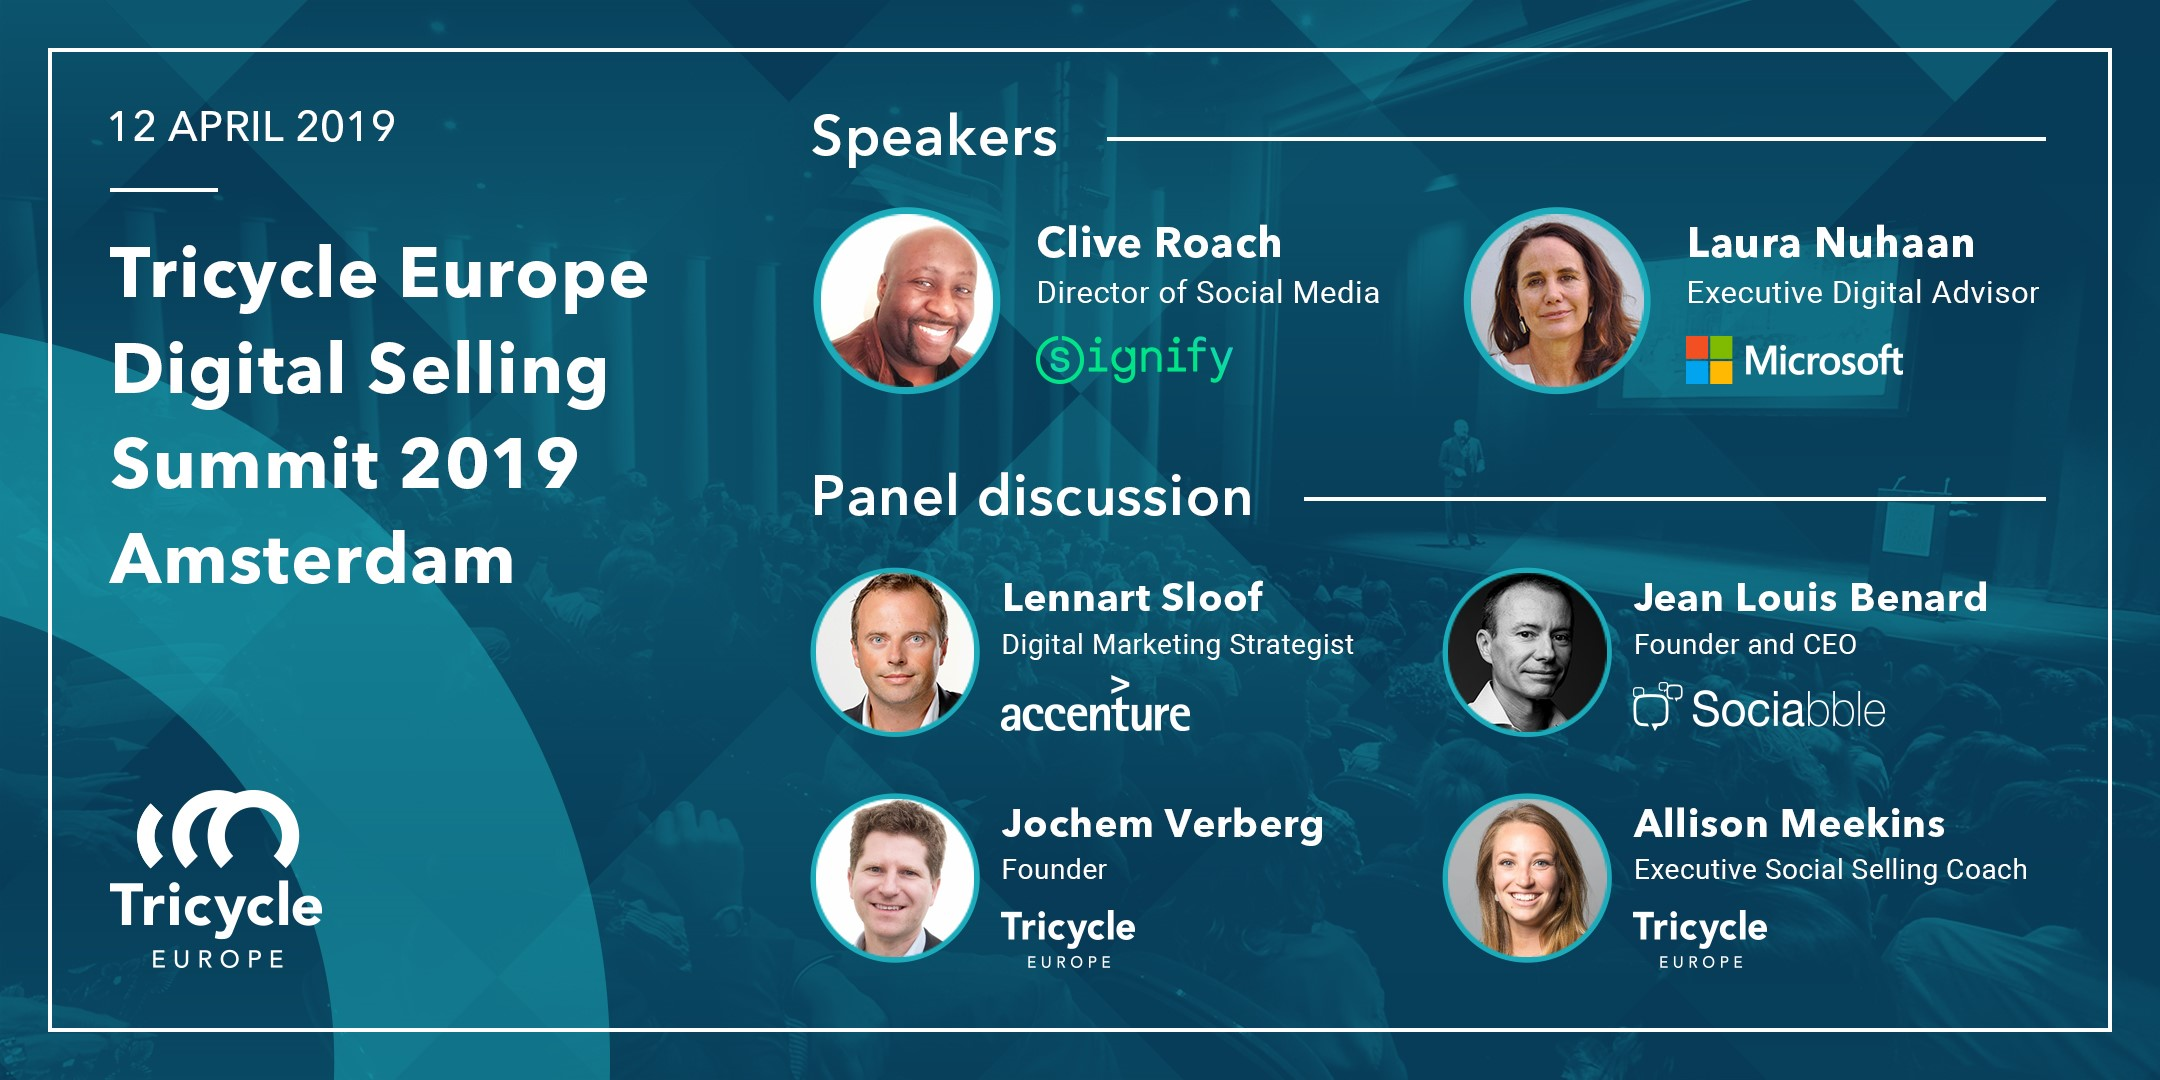 Digital Selling Summit 2019 Amsterdam